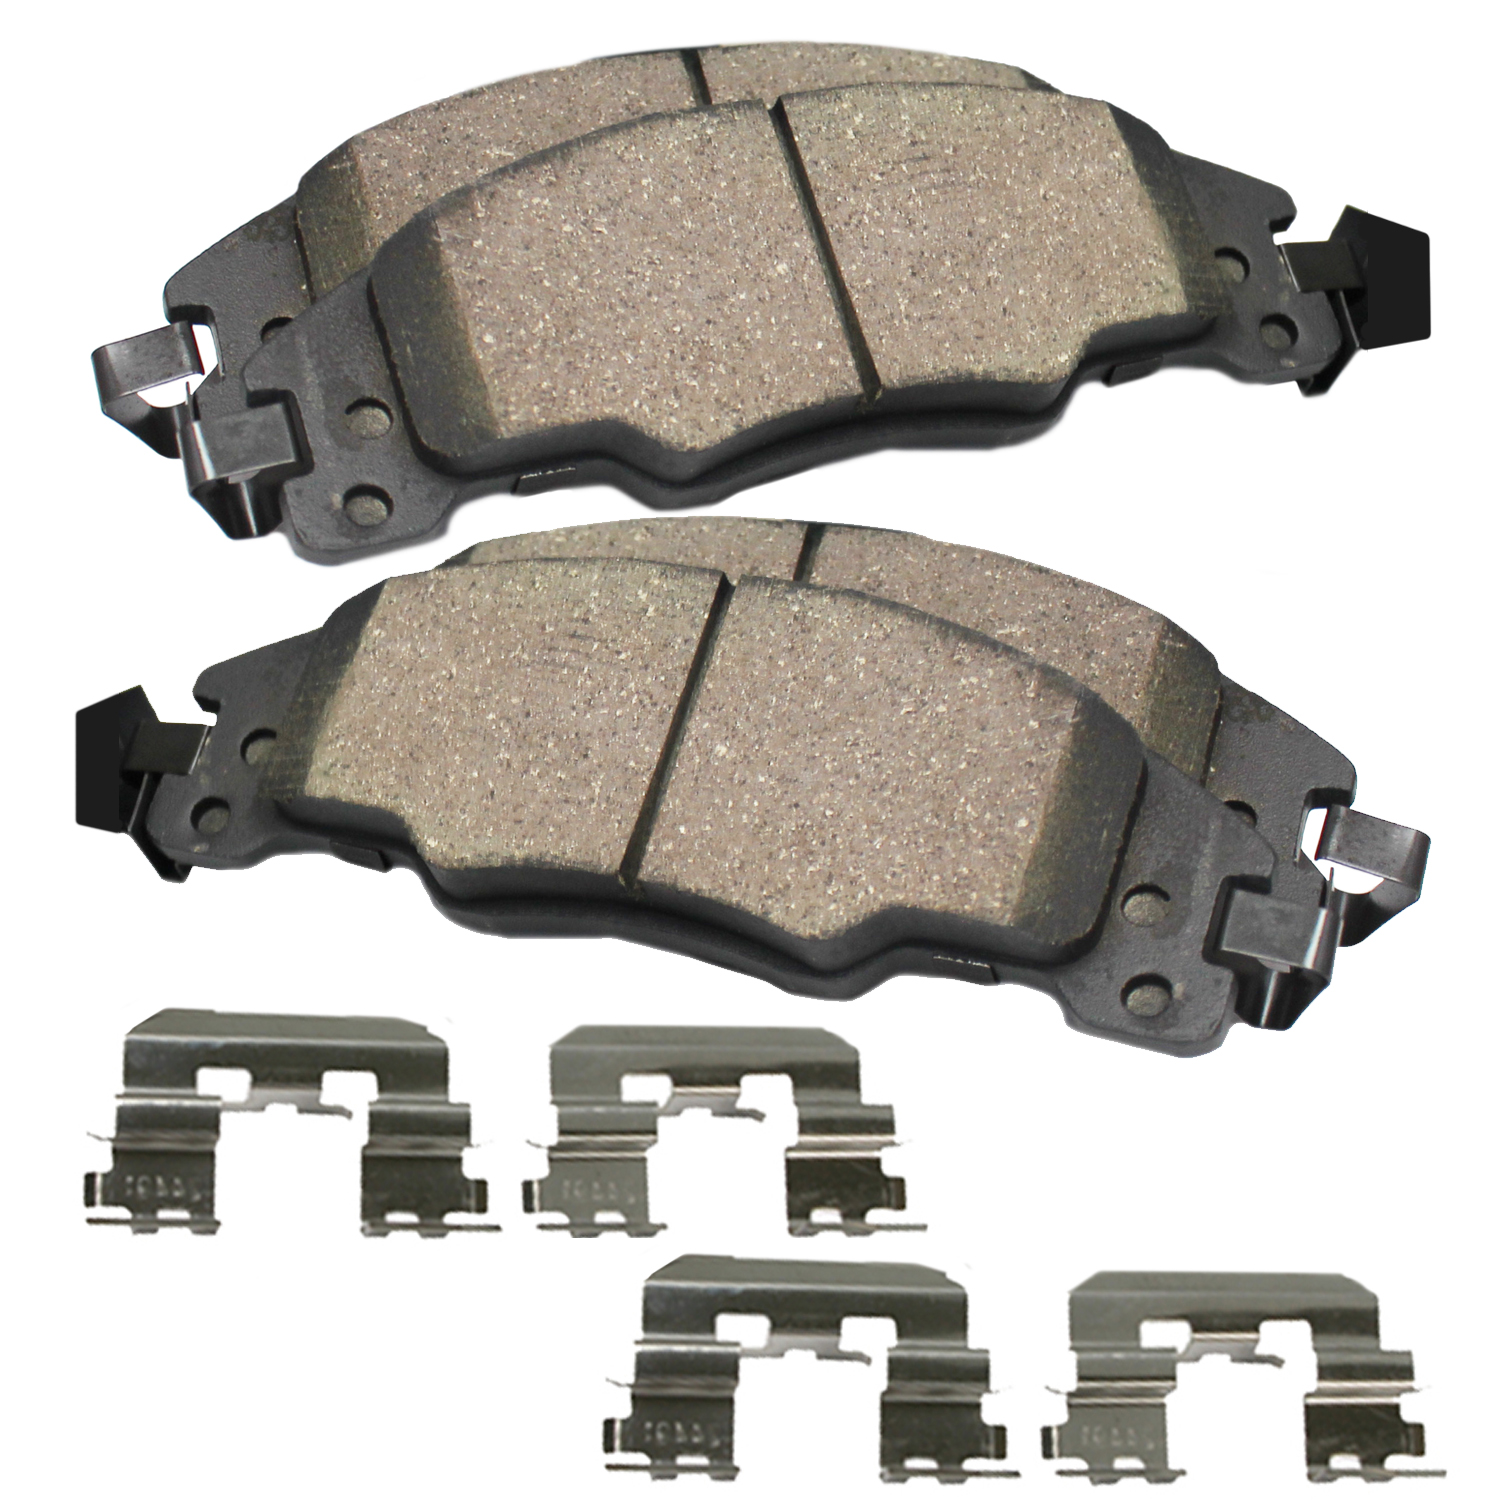 Rear Ceramic Brake Pads w/Hardware for 2001-2006 Lexus LS430